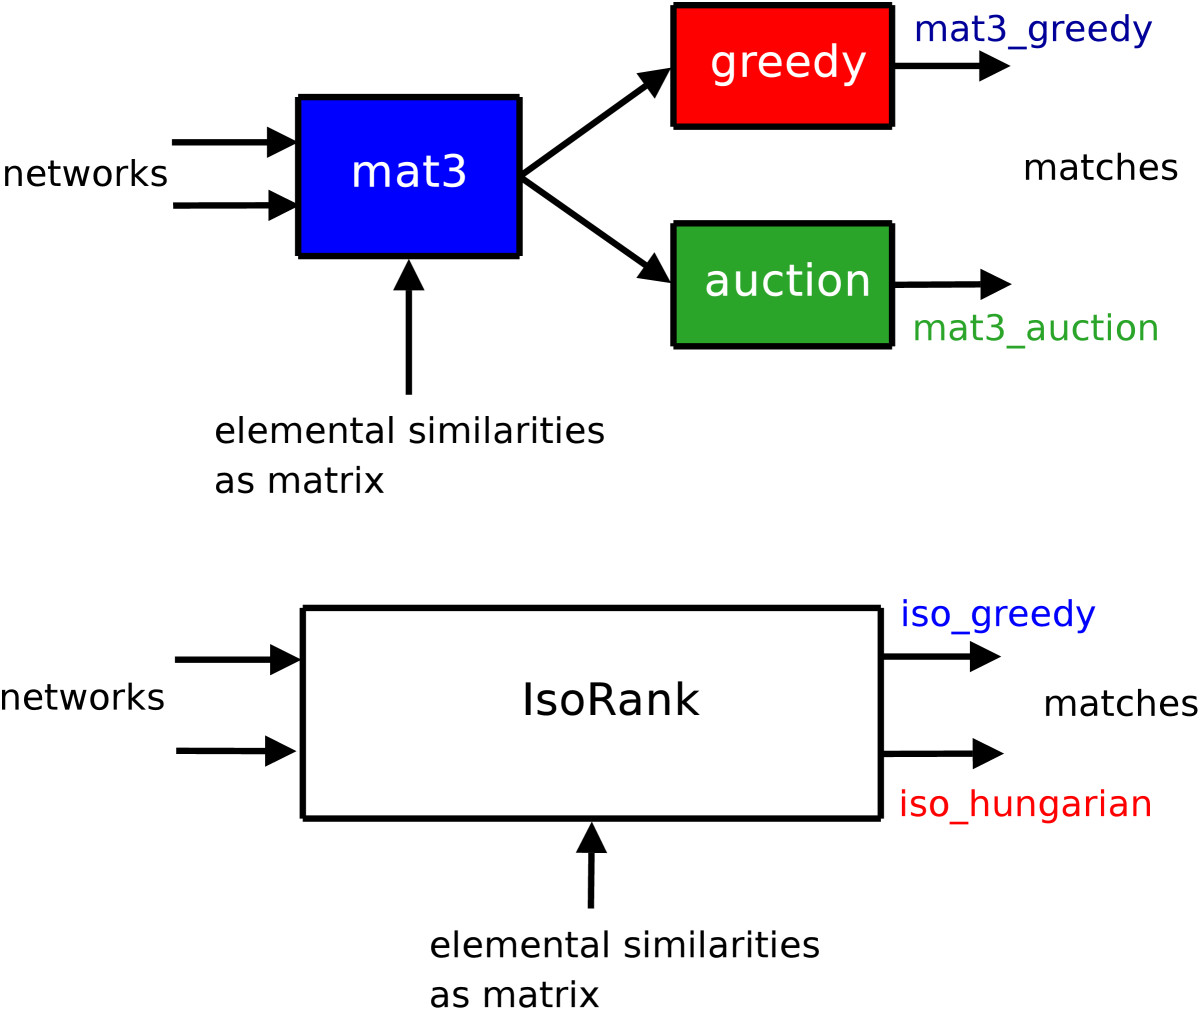 https://static-content.springer.com/image/art%3A10.1186%2F1756-0500-6-35/MediaObjects/13104_2012_Article_2229_Fig4_HTML.jpg